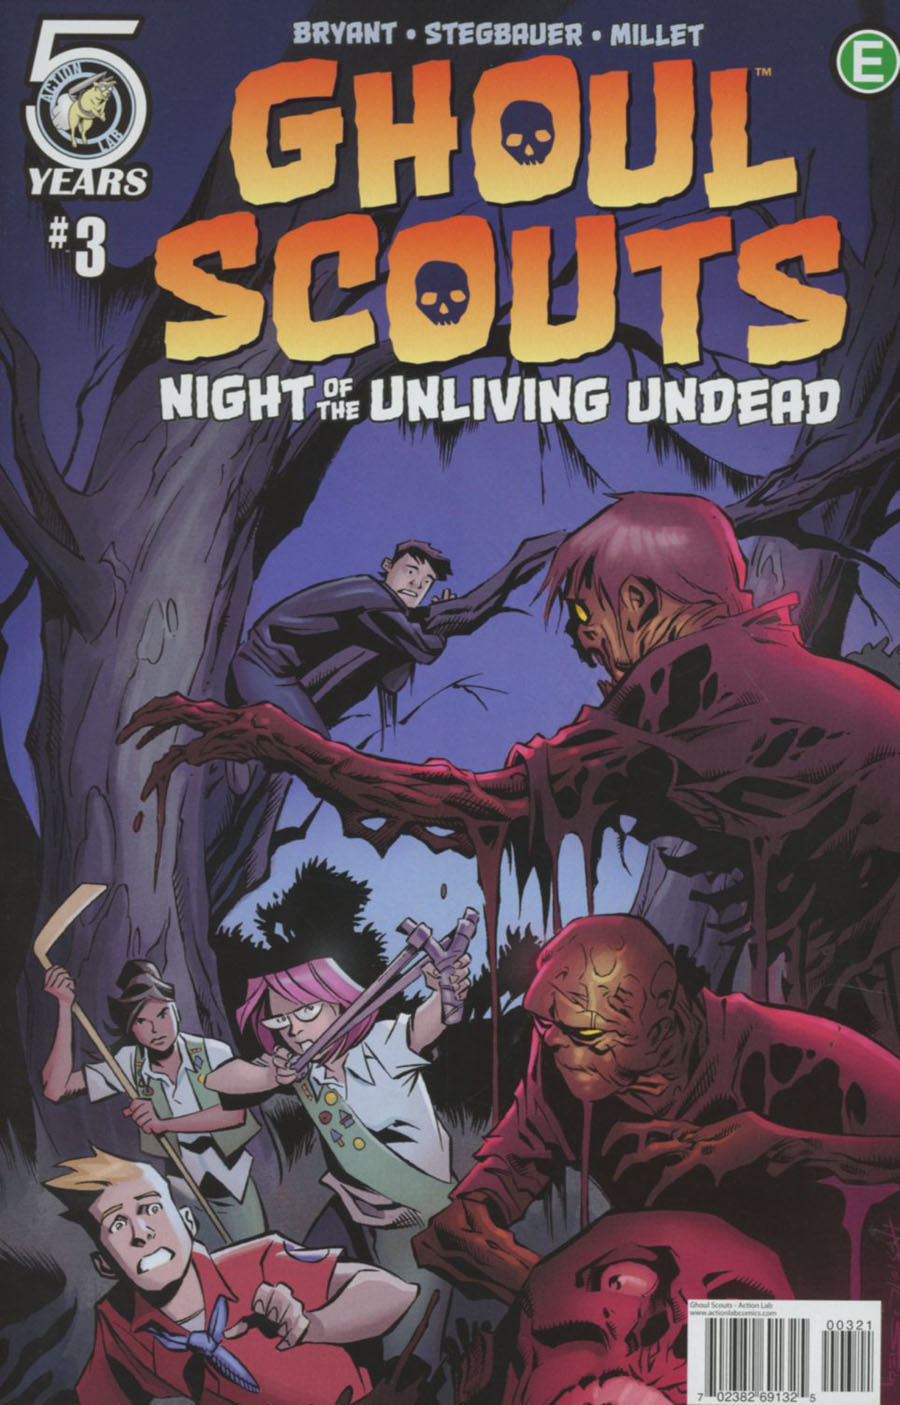 Ghoul Scouts Night Of The Unliving Undead #3 Cover B Variant Phil Hester Cover